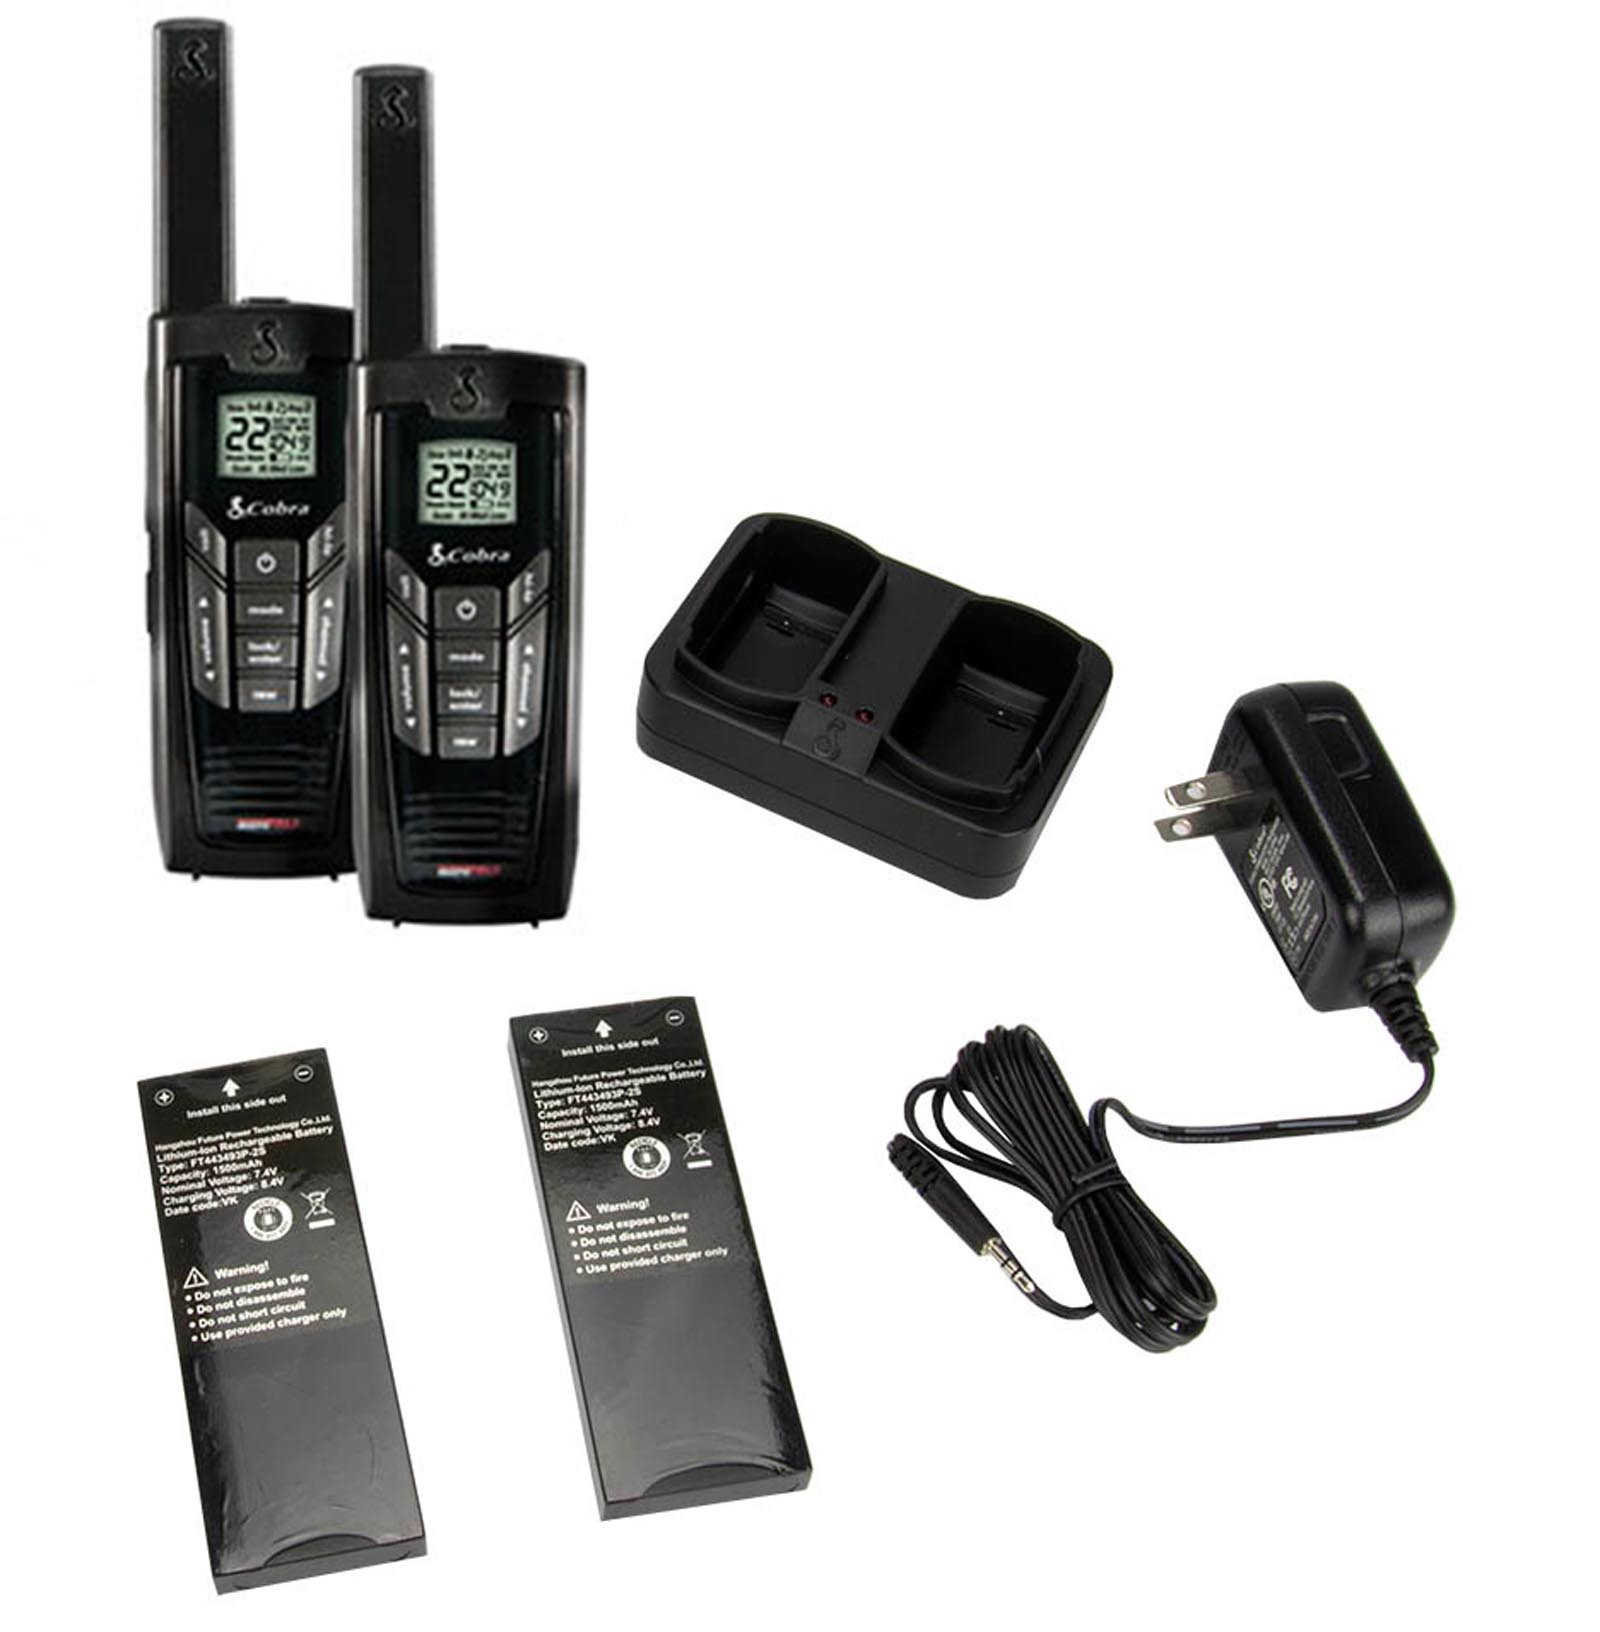 Cobra Electronics Cxr925 35-mile Microtalk 2-way Radios, 2 Pk